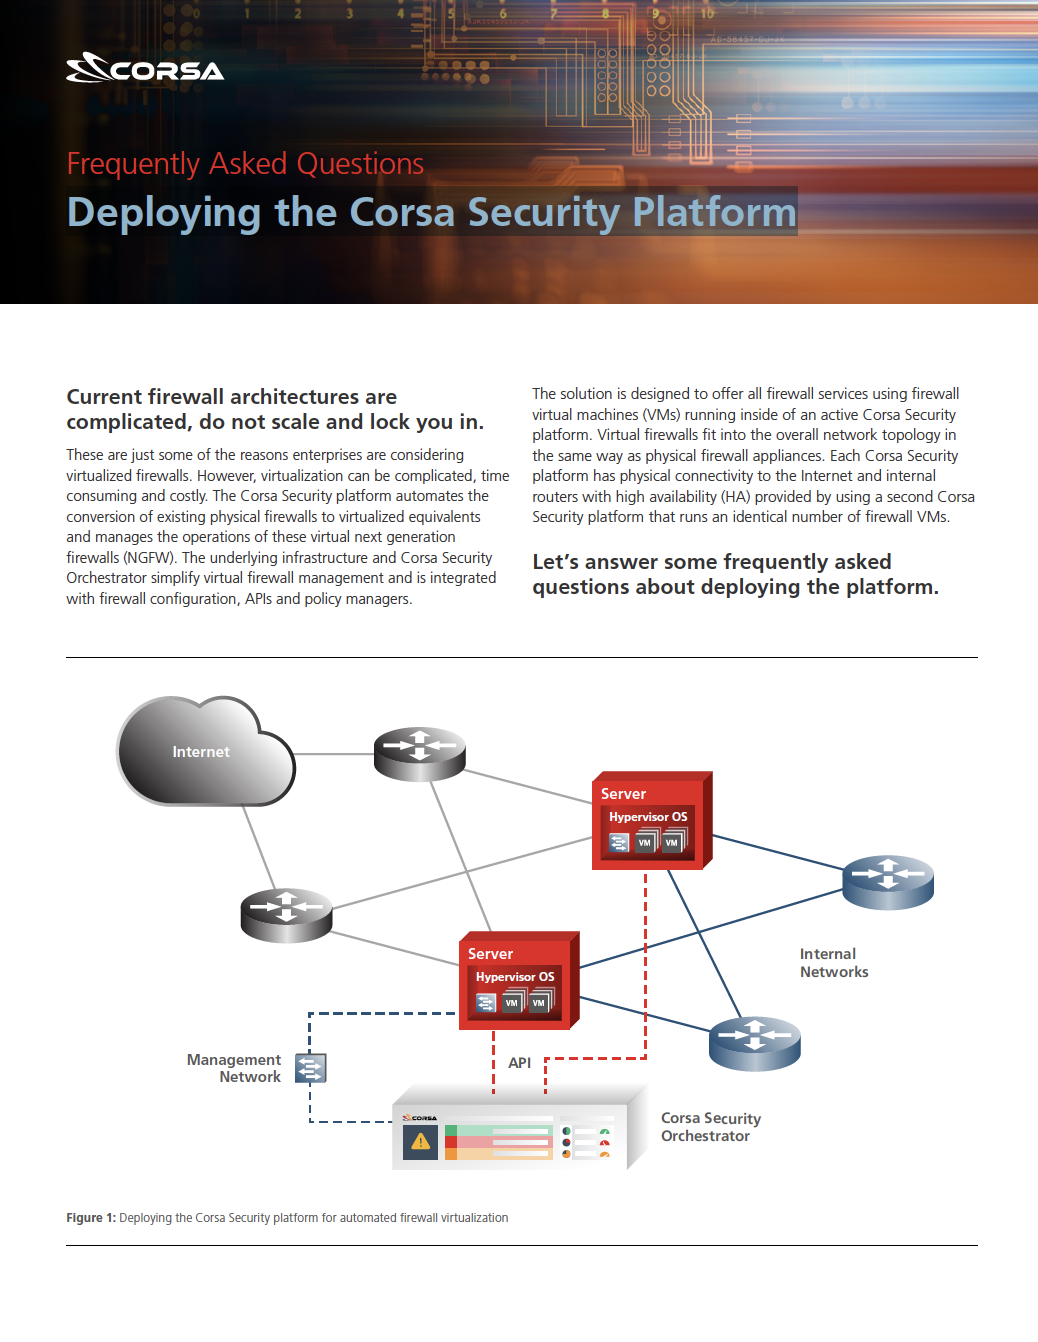 Corsa_FAQ-Deploying_Corsa_Security_Platform-cover-big